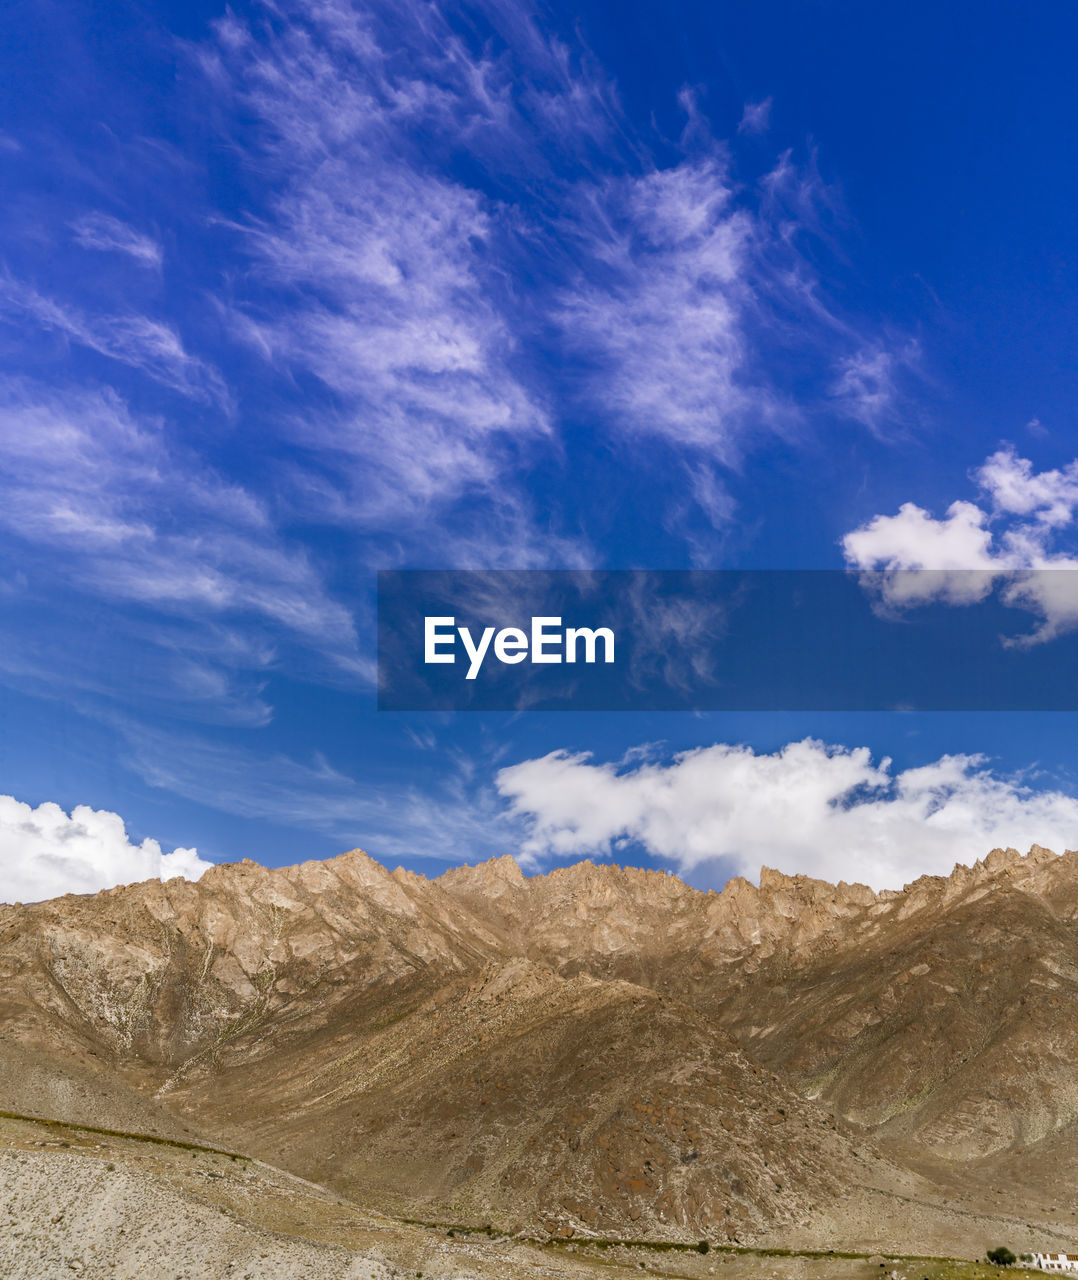 sky, cloud - sky, scenics - nature, beauty in nature, blue, tranquil scene, tranquility, mountain, non-urban scene, landscape, day, nature, environment, no people, physical geography, desert, land, arid climate, rock, geology, outdoors, climate, formation